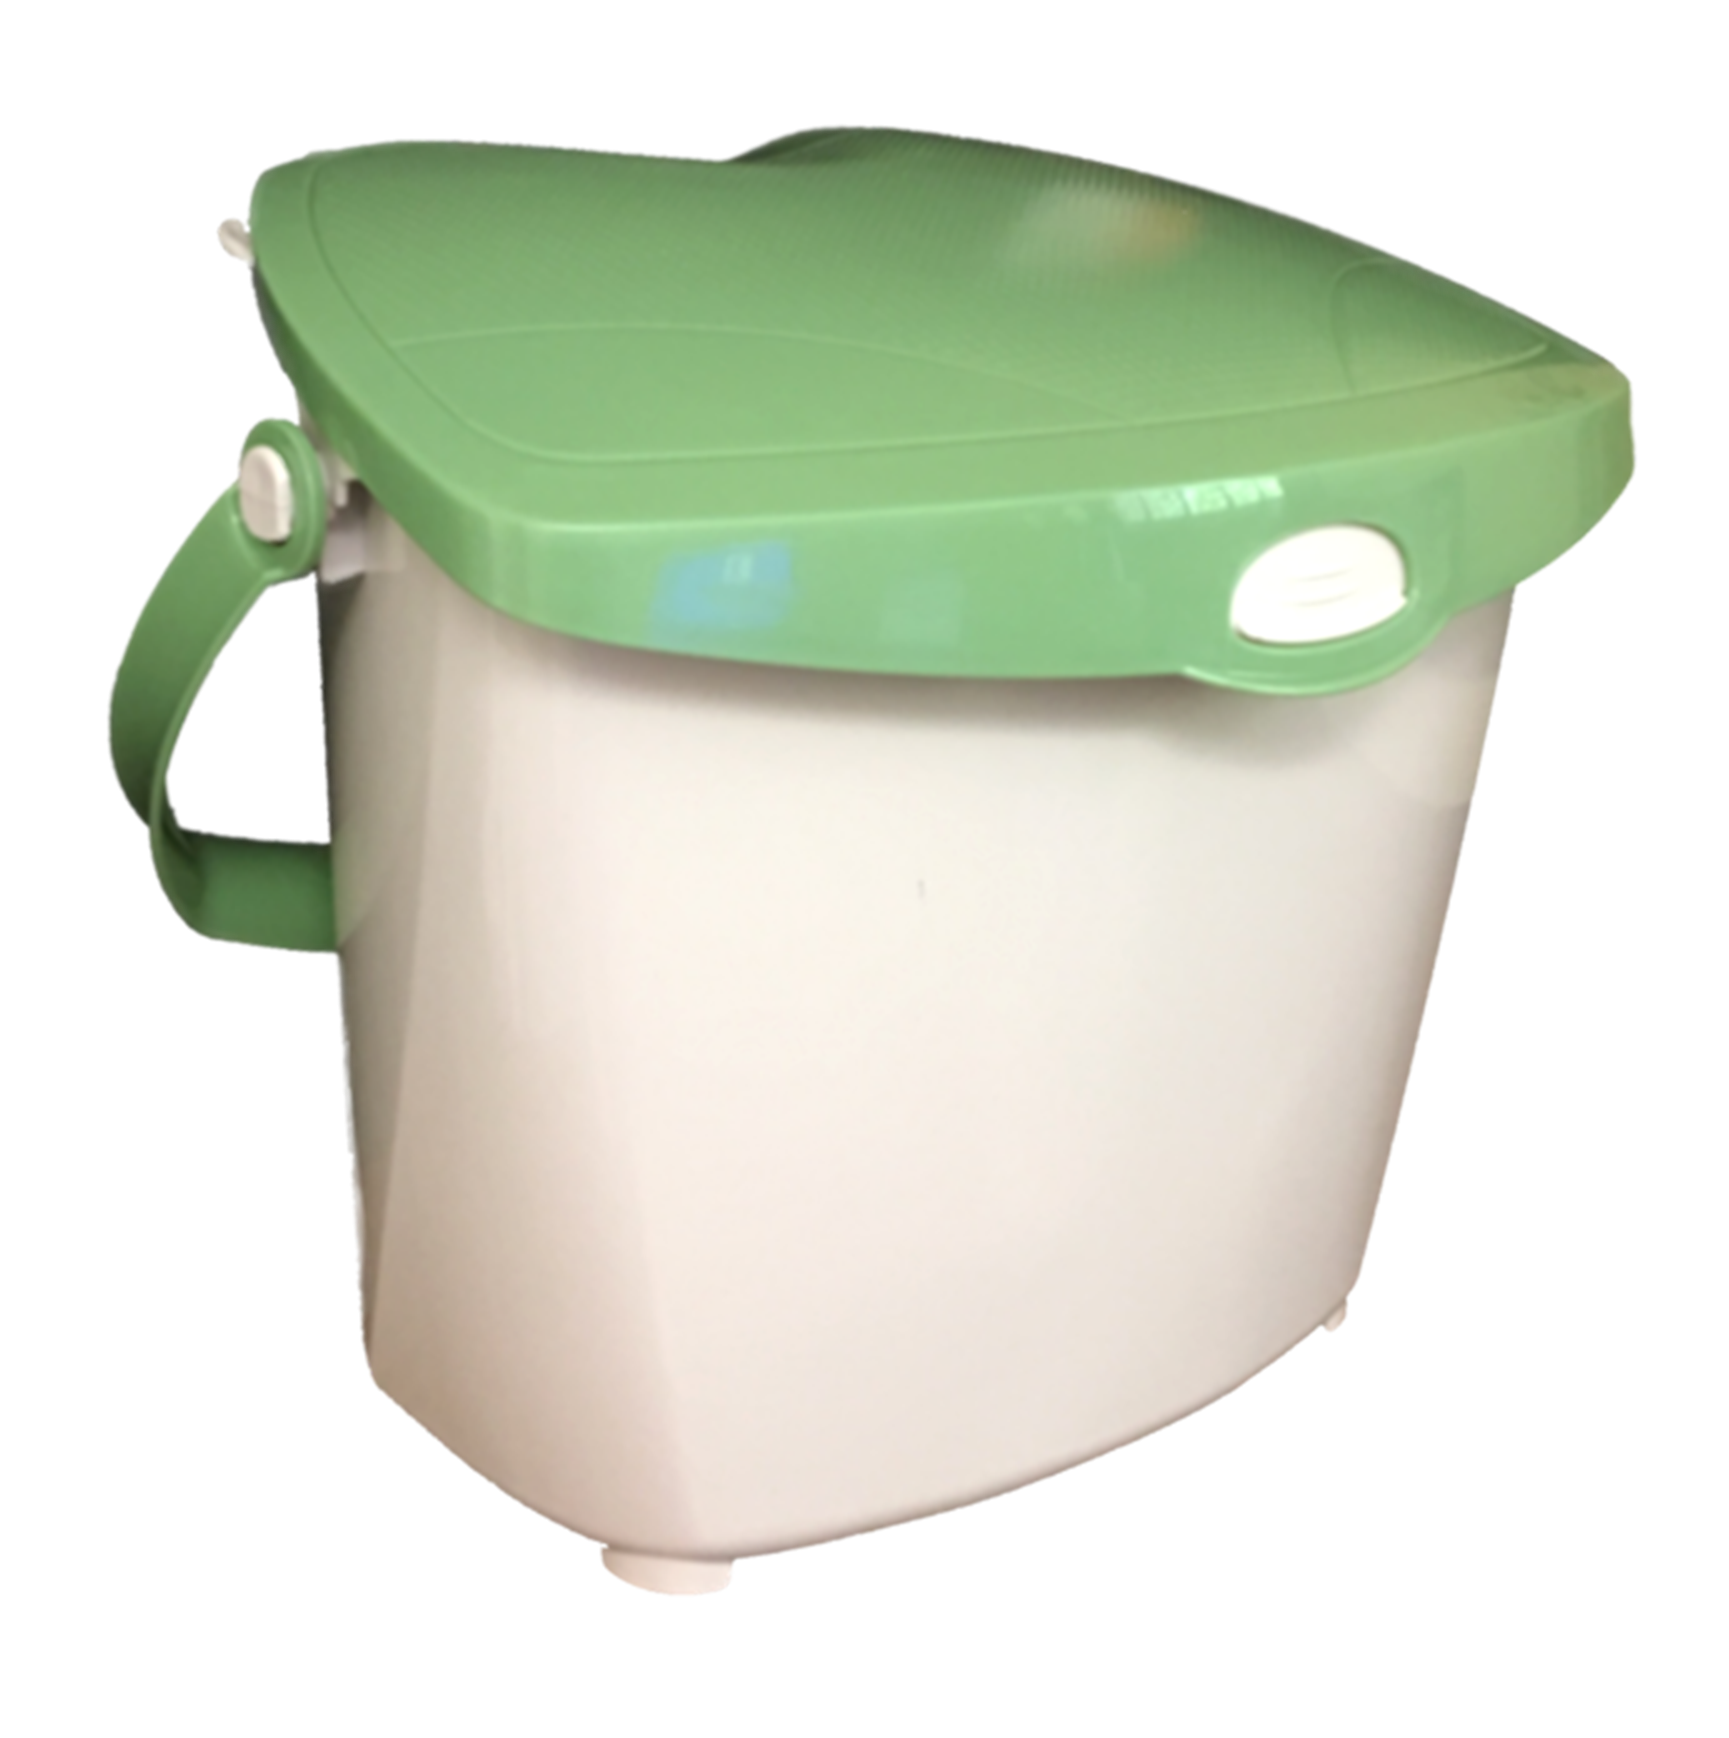 Home / Home Composting / Kitchen Compost Pail